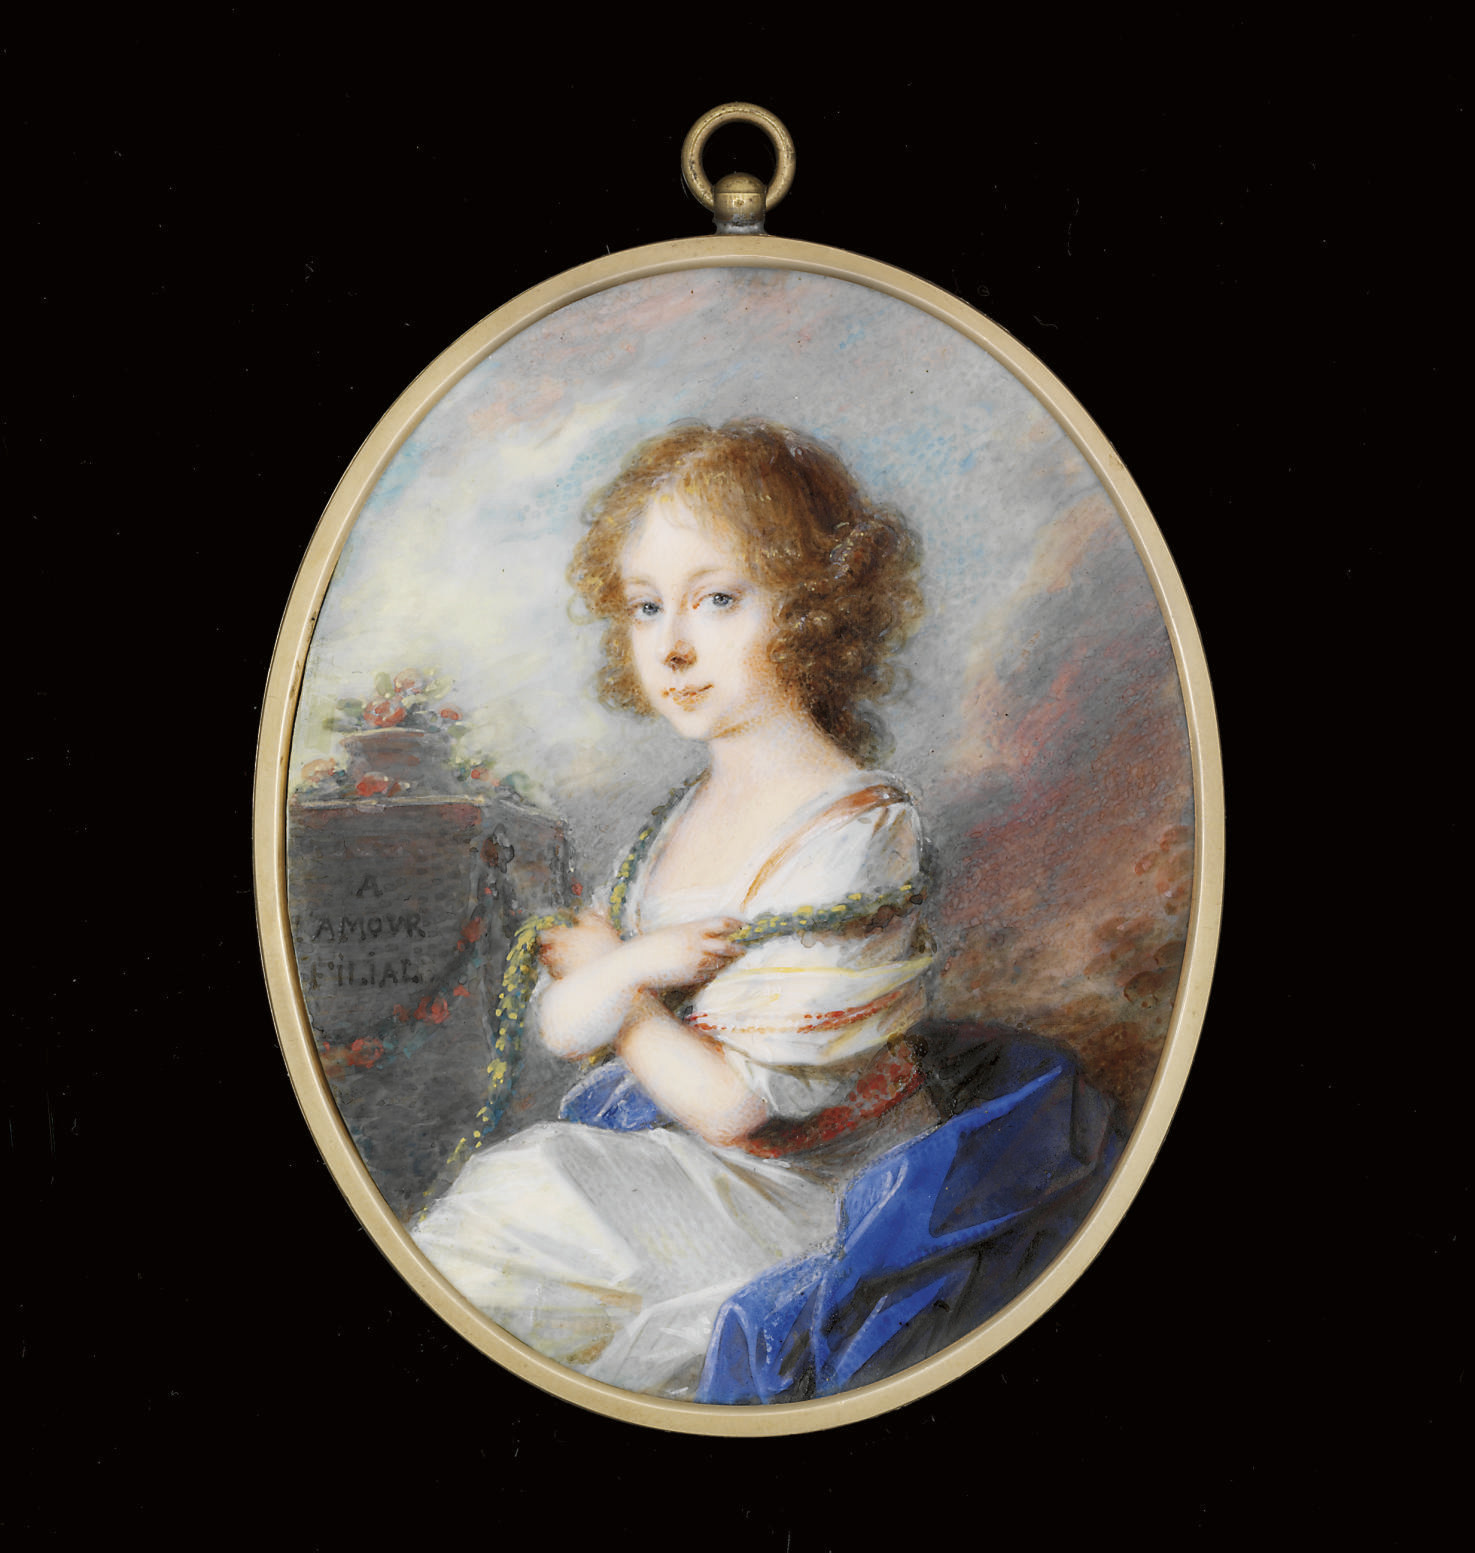 Countess Molly Zichy-Ferraris (1780-1866) as a child, in white dress, orange-bordered white shawl and laurels draped around her shoulders, seated on a blue shawl, next to stone plinth engraved with 'A  L'AMOUR  FILIAL' and decorated with garlands of flowers; landscape and sky background